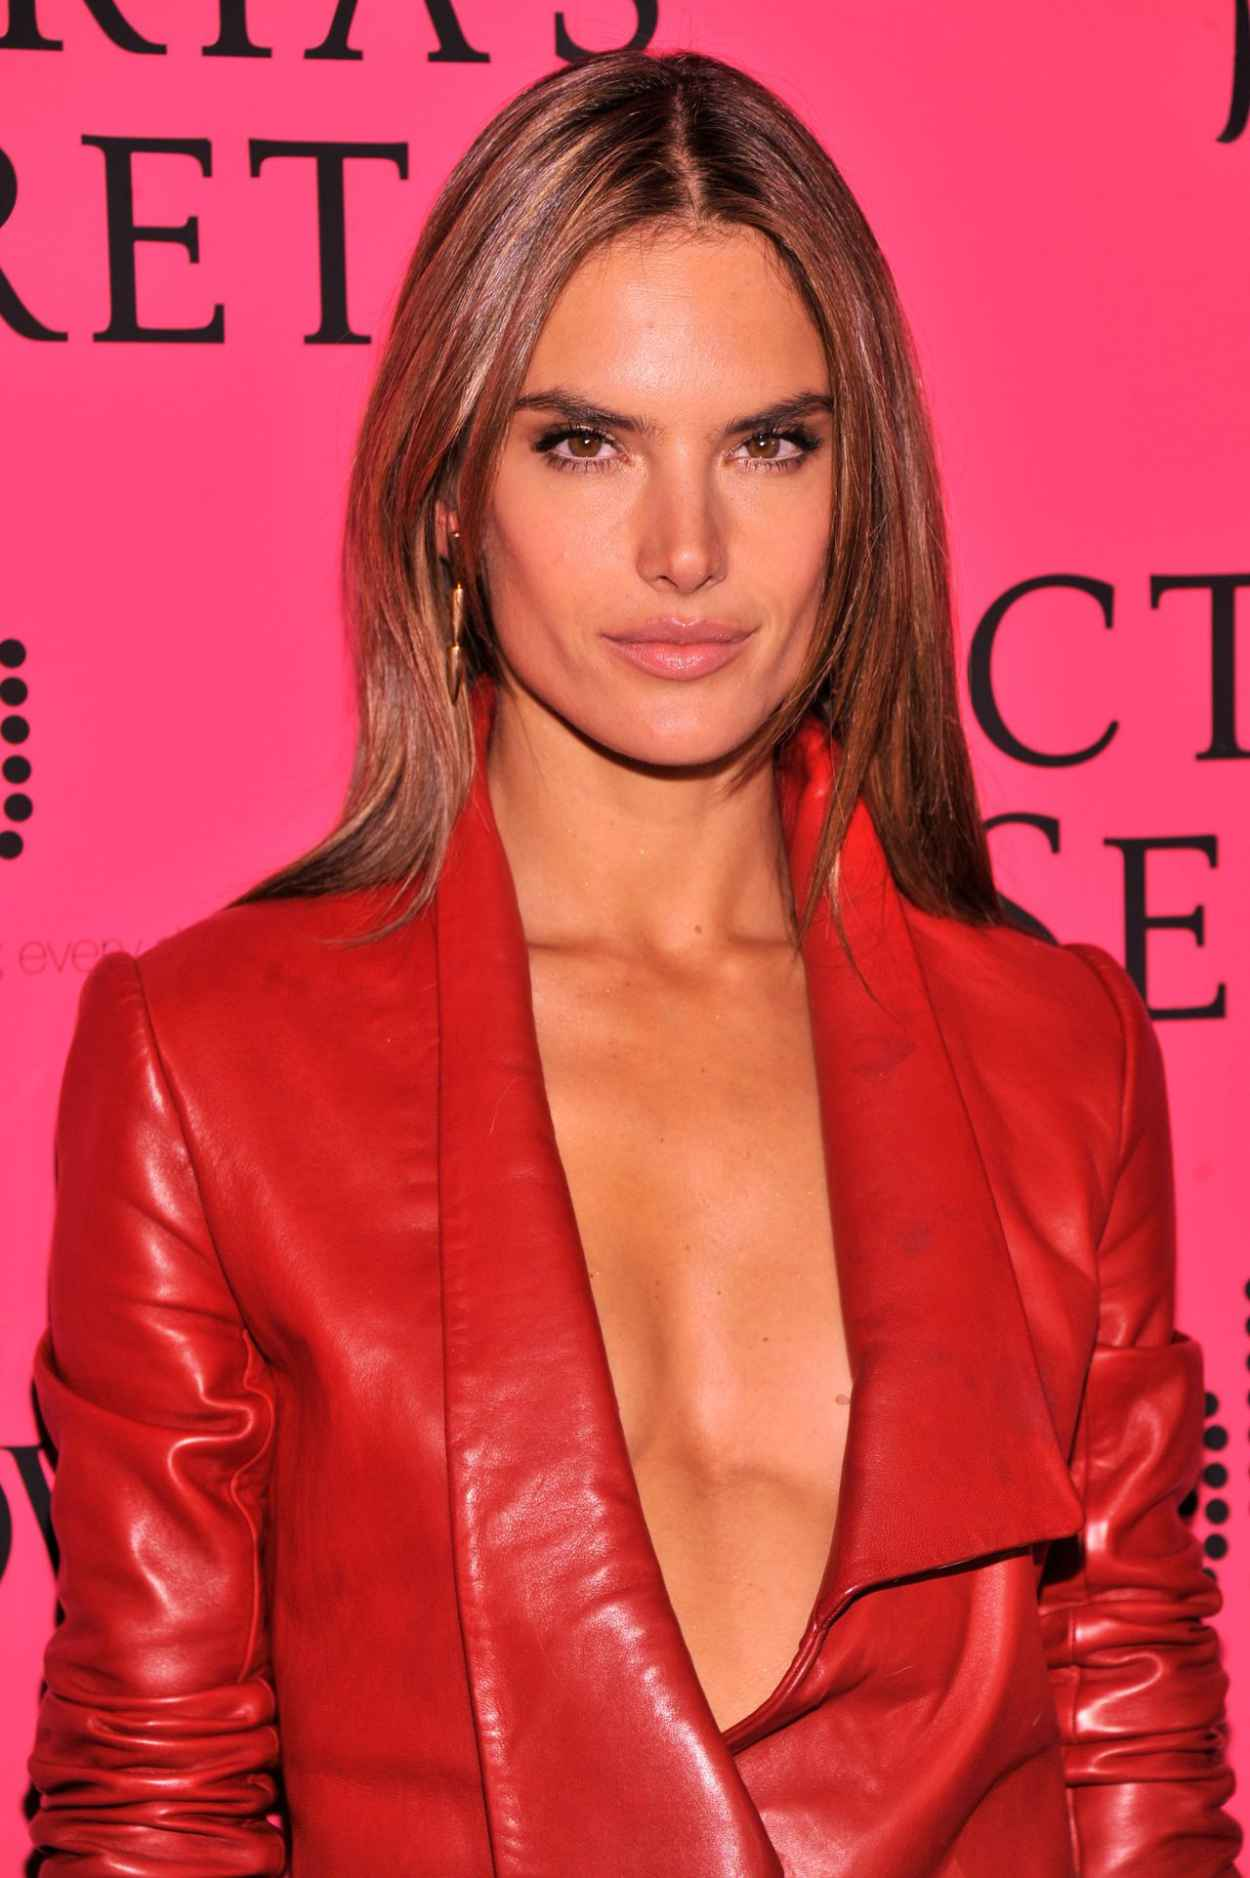 Alessandra Ambrosio in Red on Red Carpet - Victorias Secret Fashion After Party at TAO Downtown New York, November 2015-1